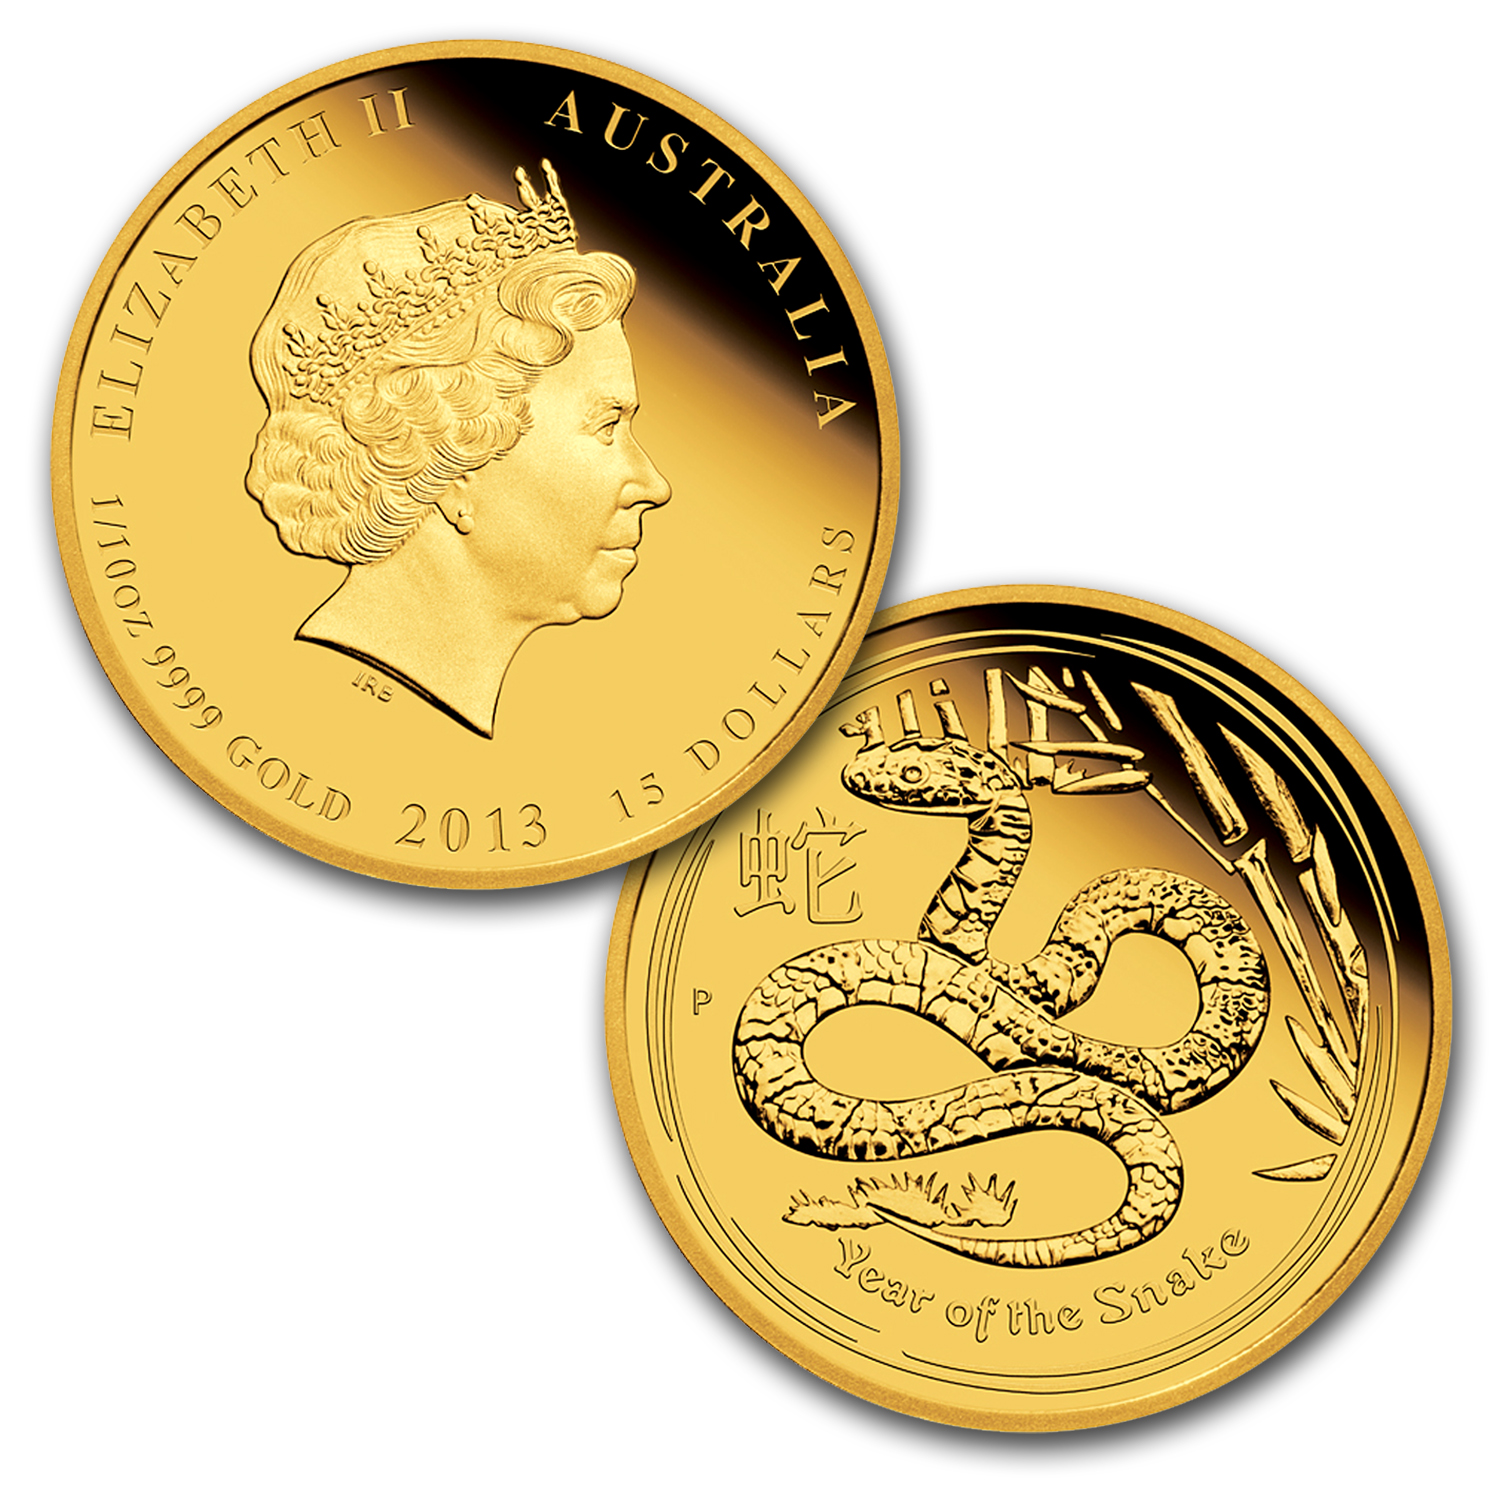 2013 3-Coin Gold Year of the Snake Proof Set (Series II)